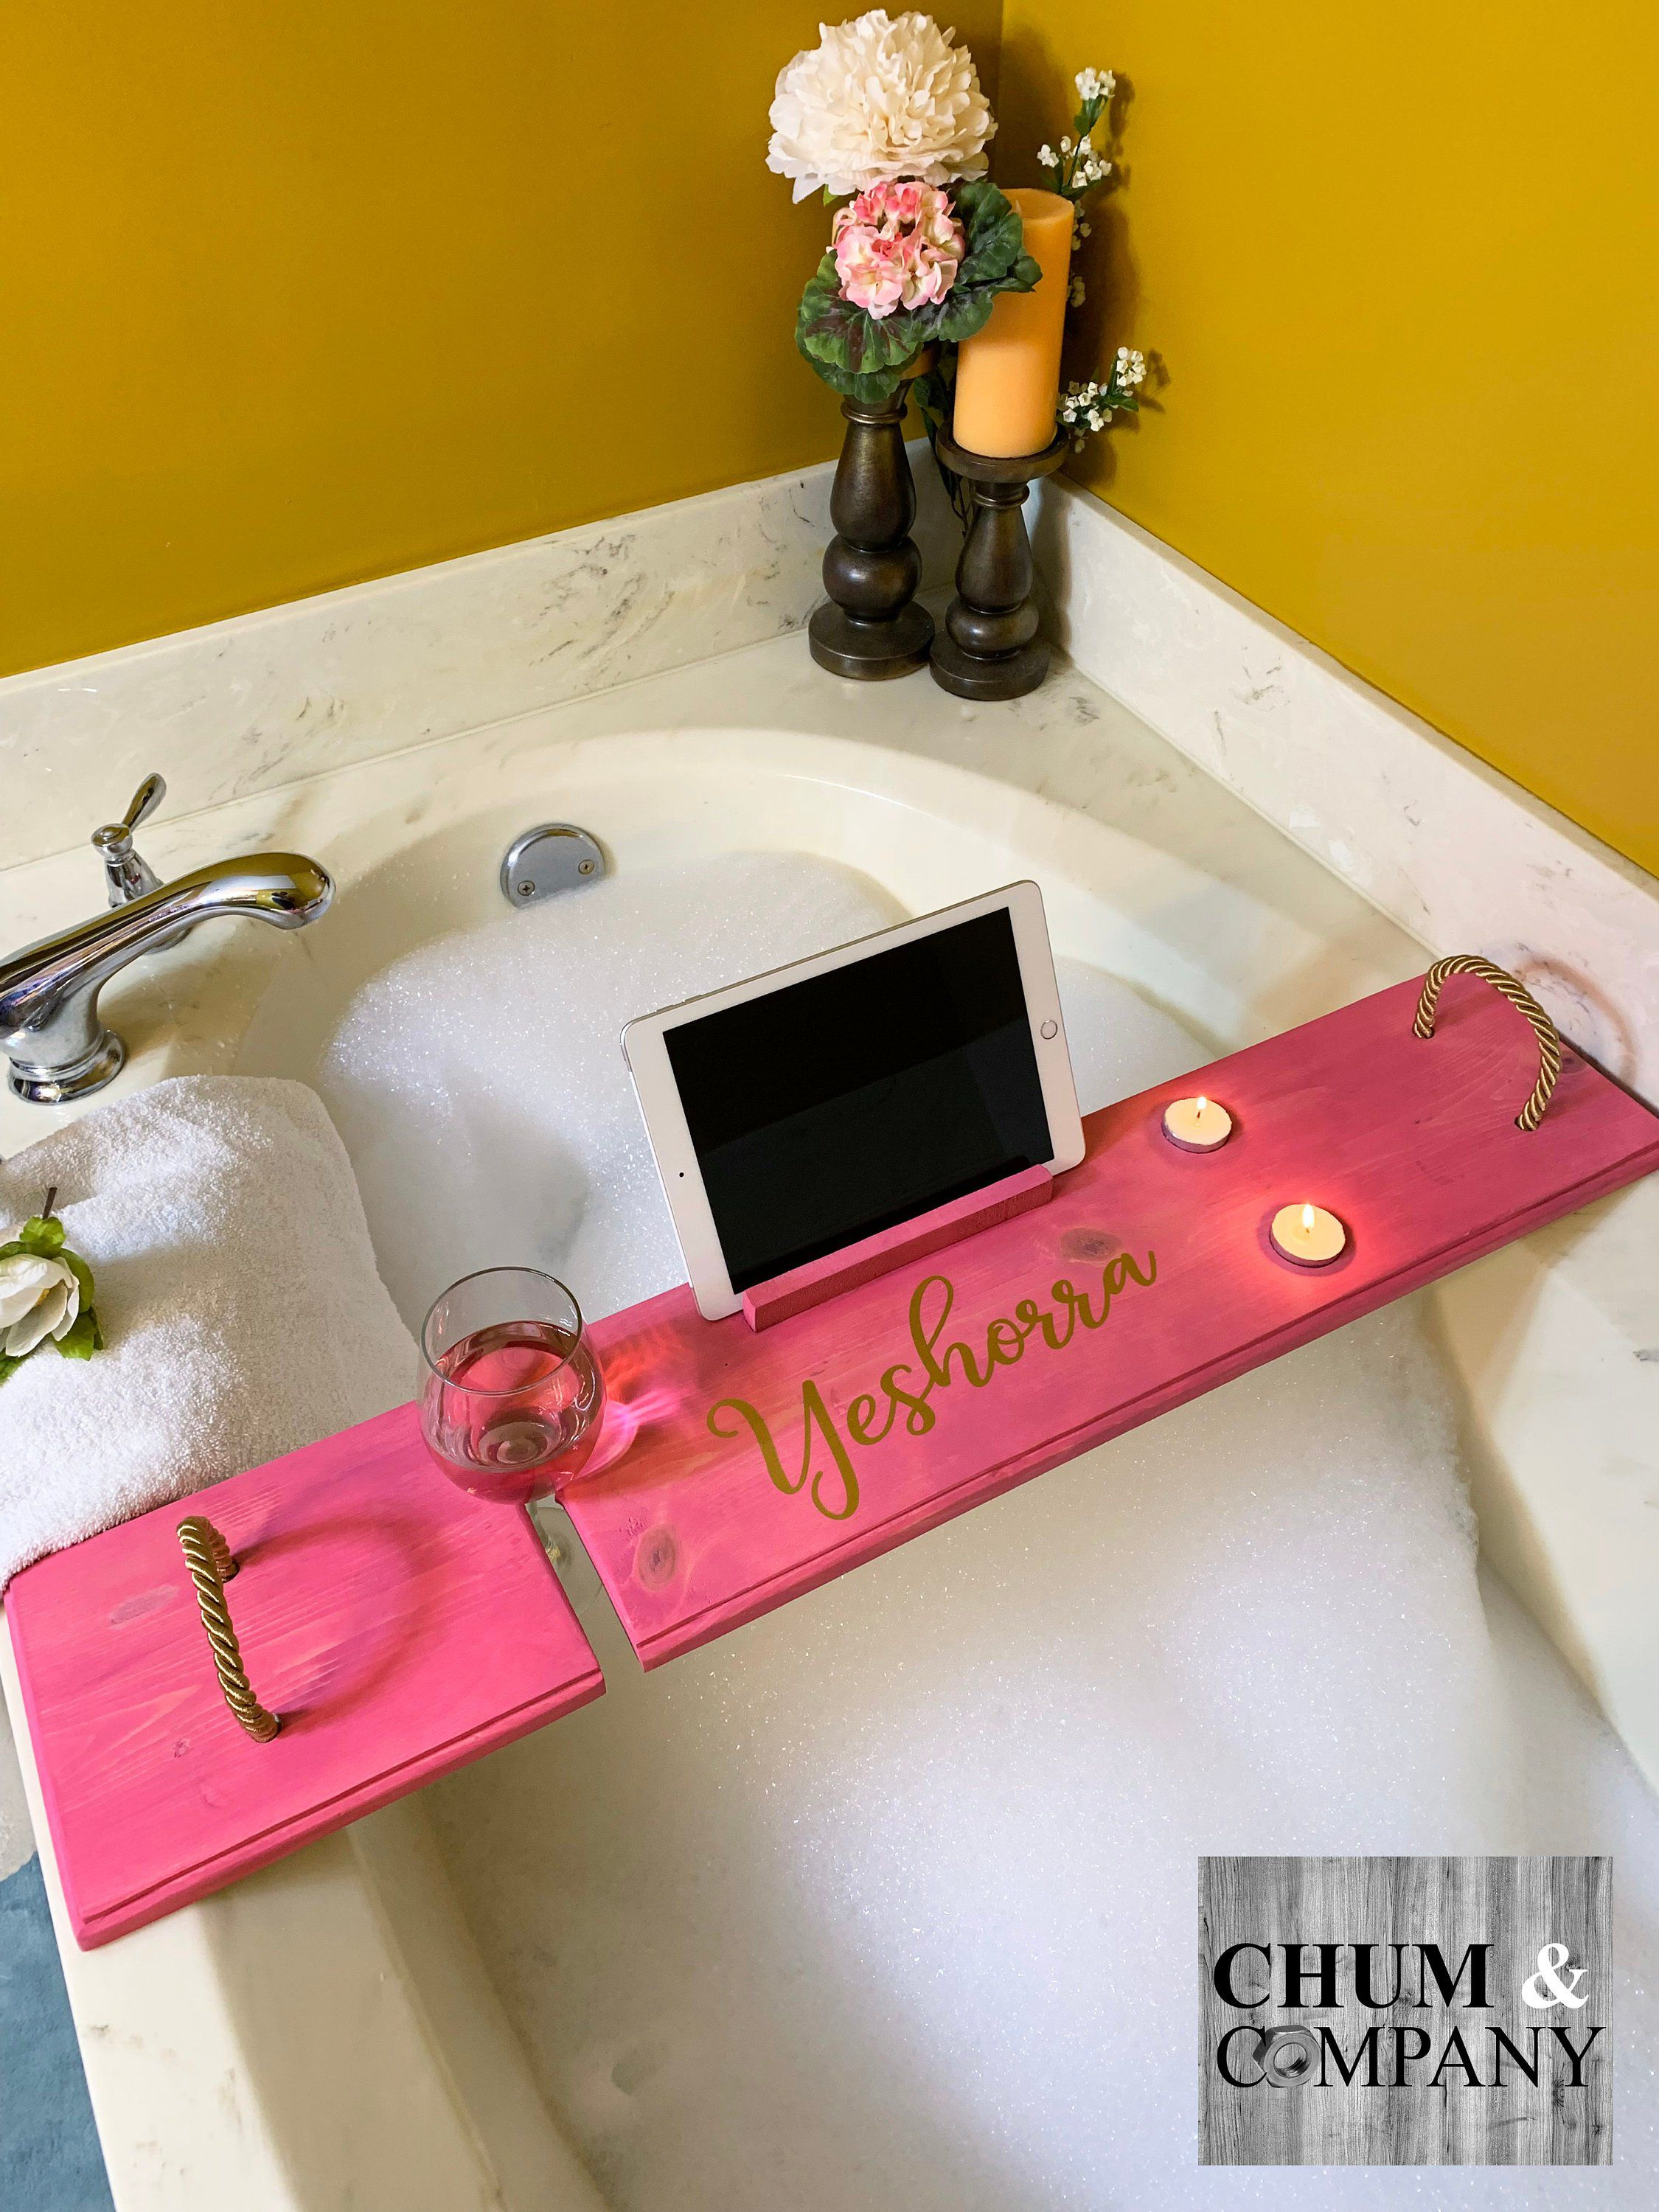 Mother S Day Gifts Personalized Bath Caddy Bath Tray Etsy Bath Tray Bath Caddy Wood Bath